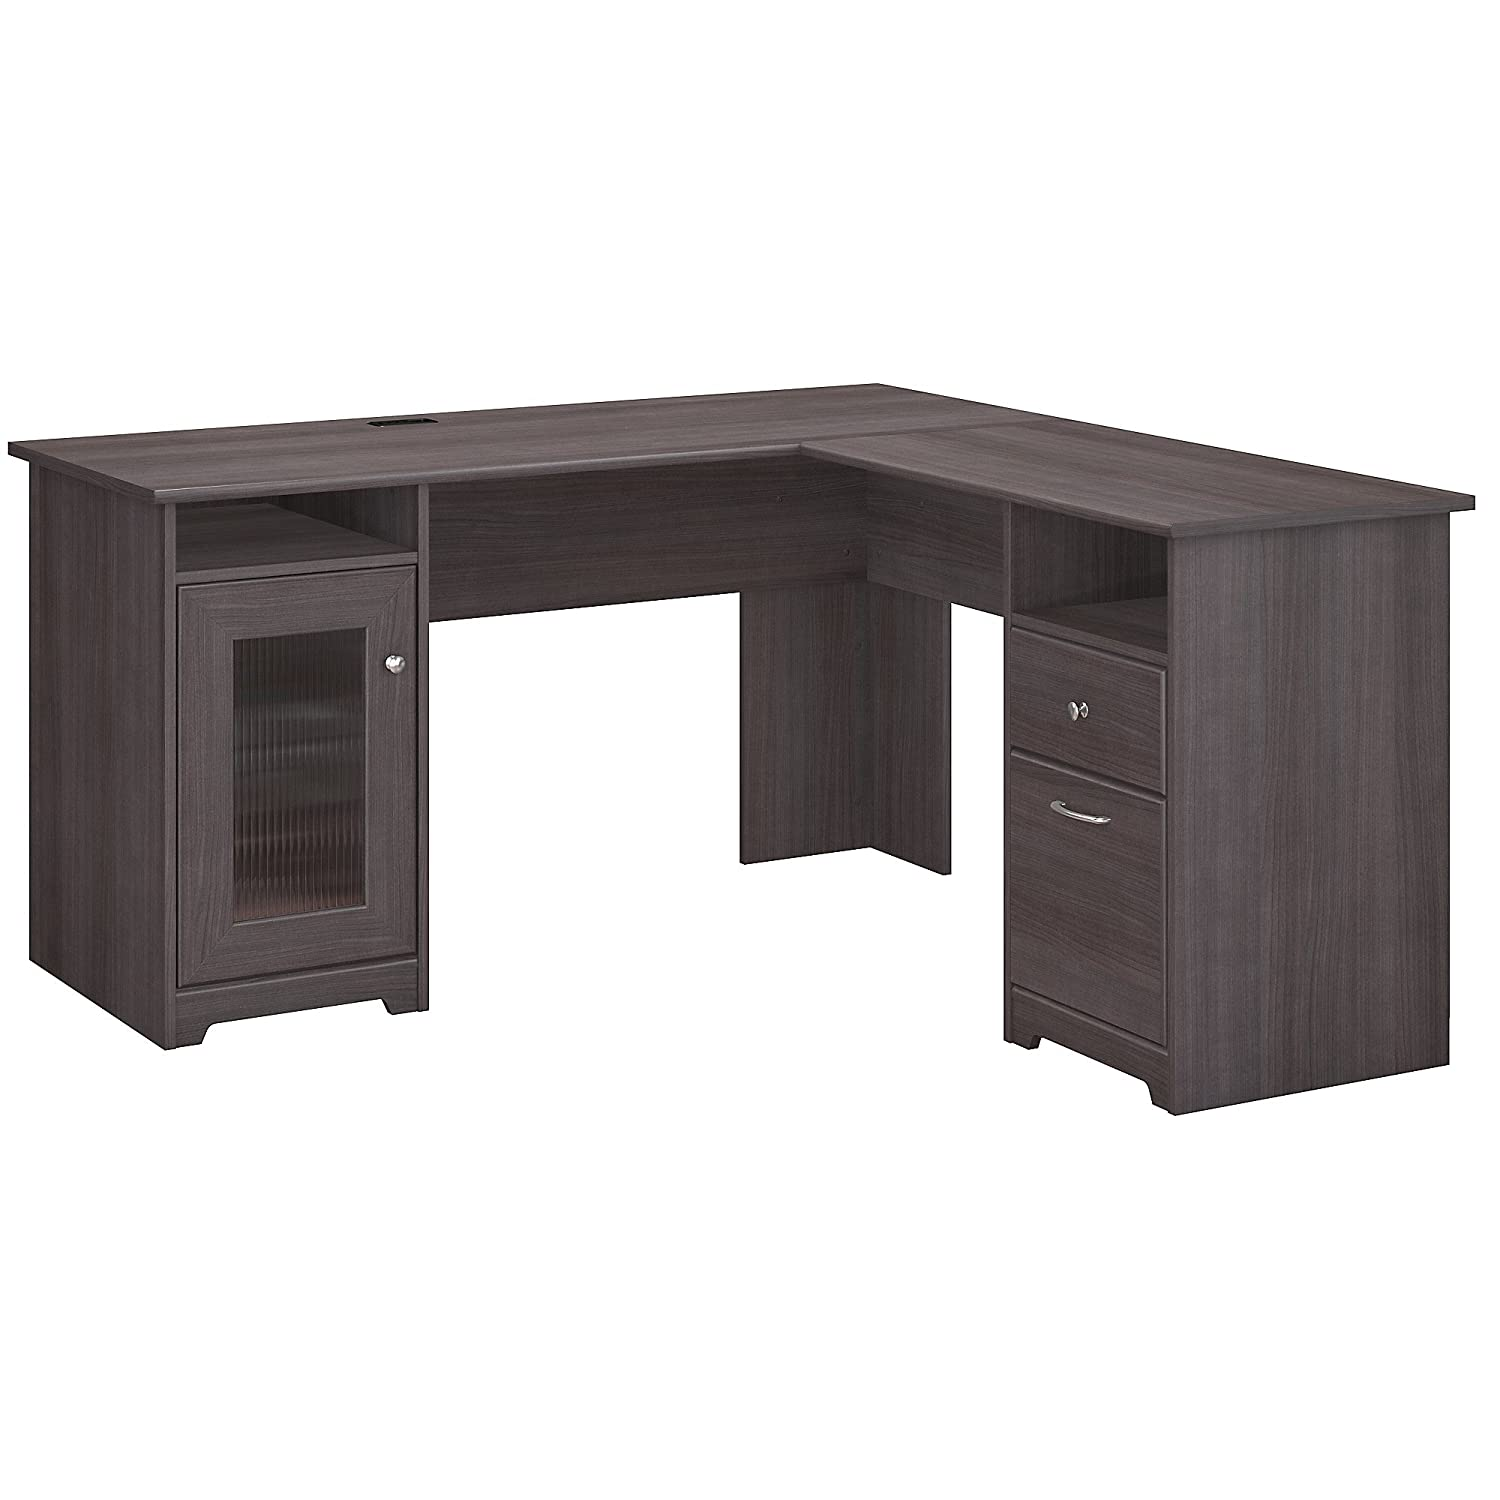 Amazon com bush furniture cabot l shaped computer desk in heather gray kitchen dining